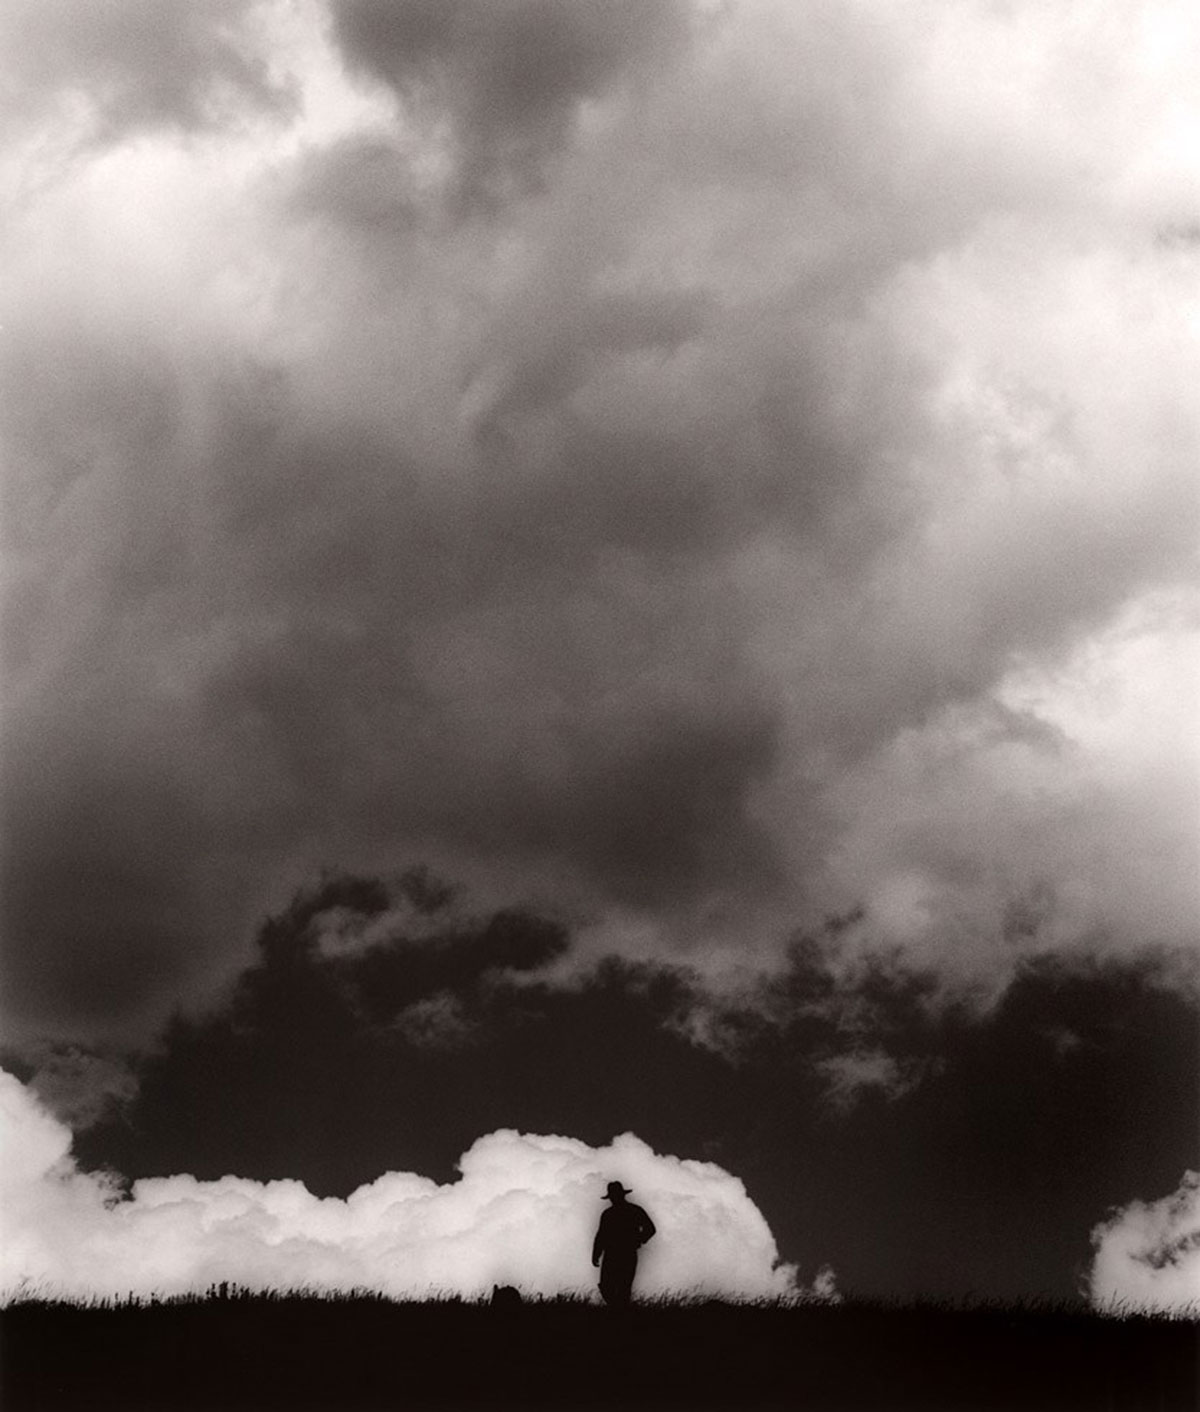 Steve Hammer in the Clouds, Burns, Colorado, 2009 © Michael Crouser